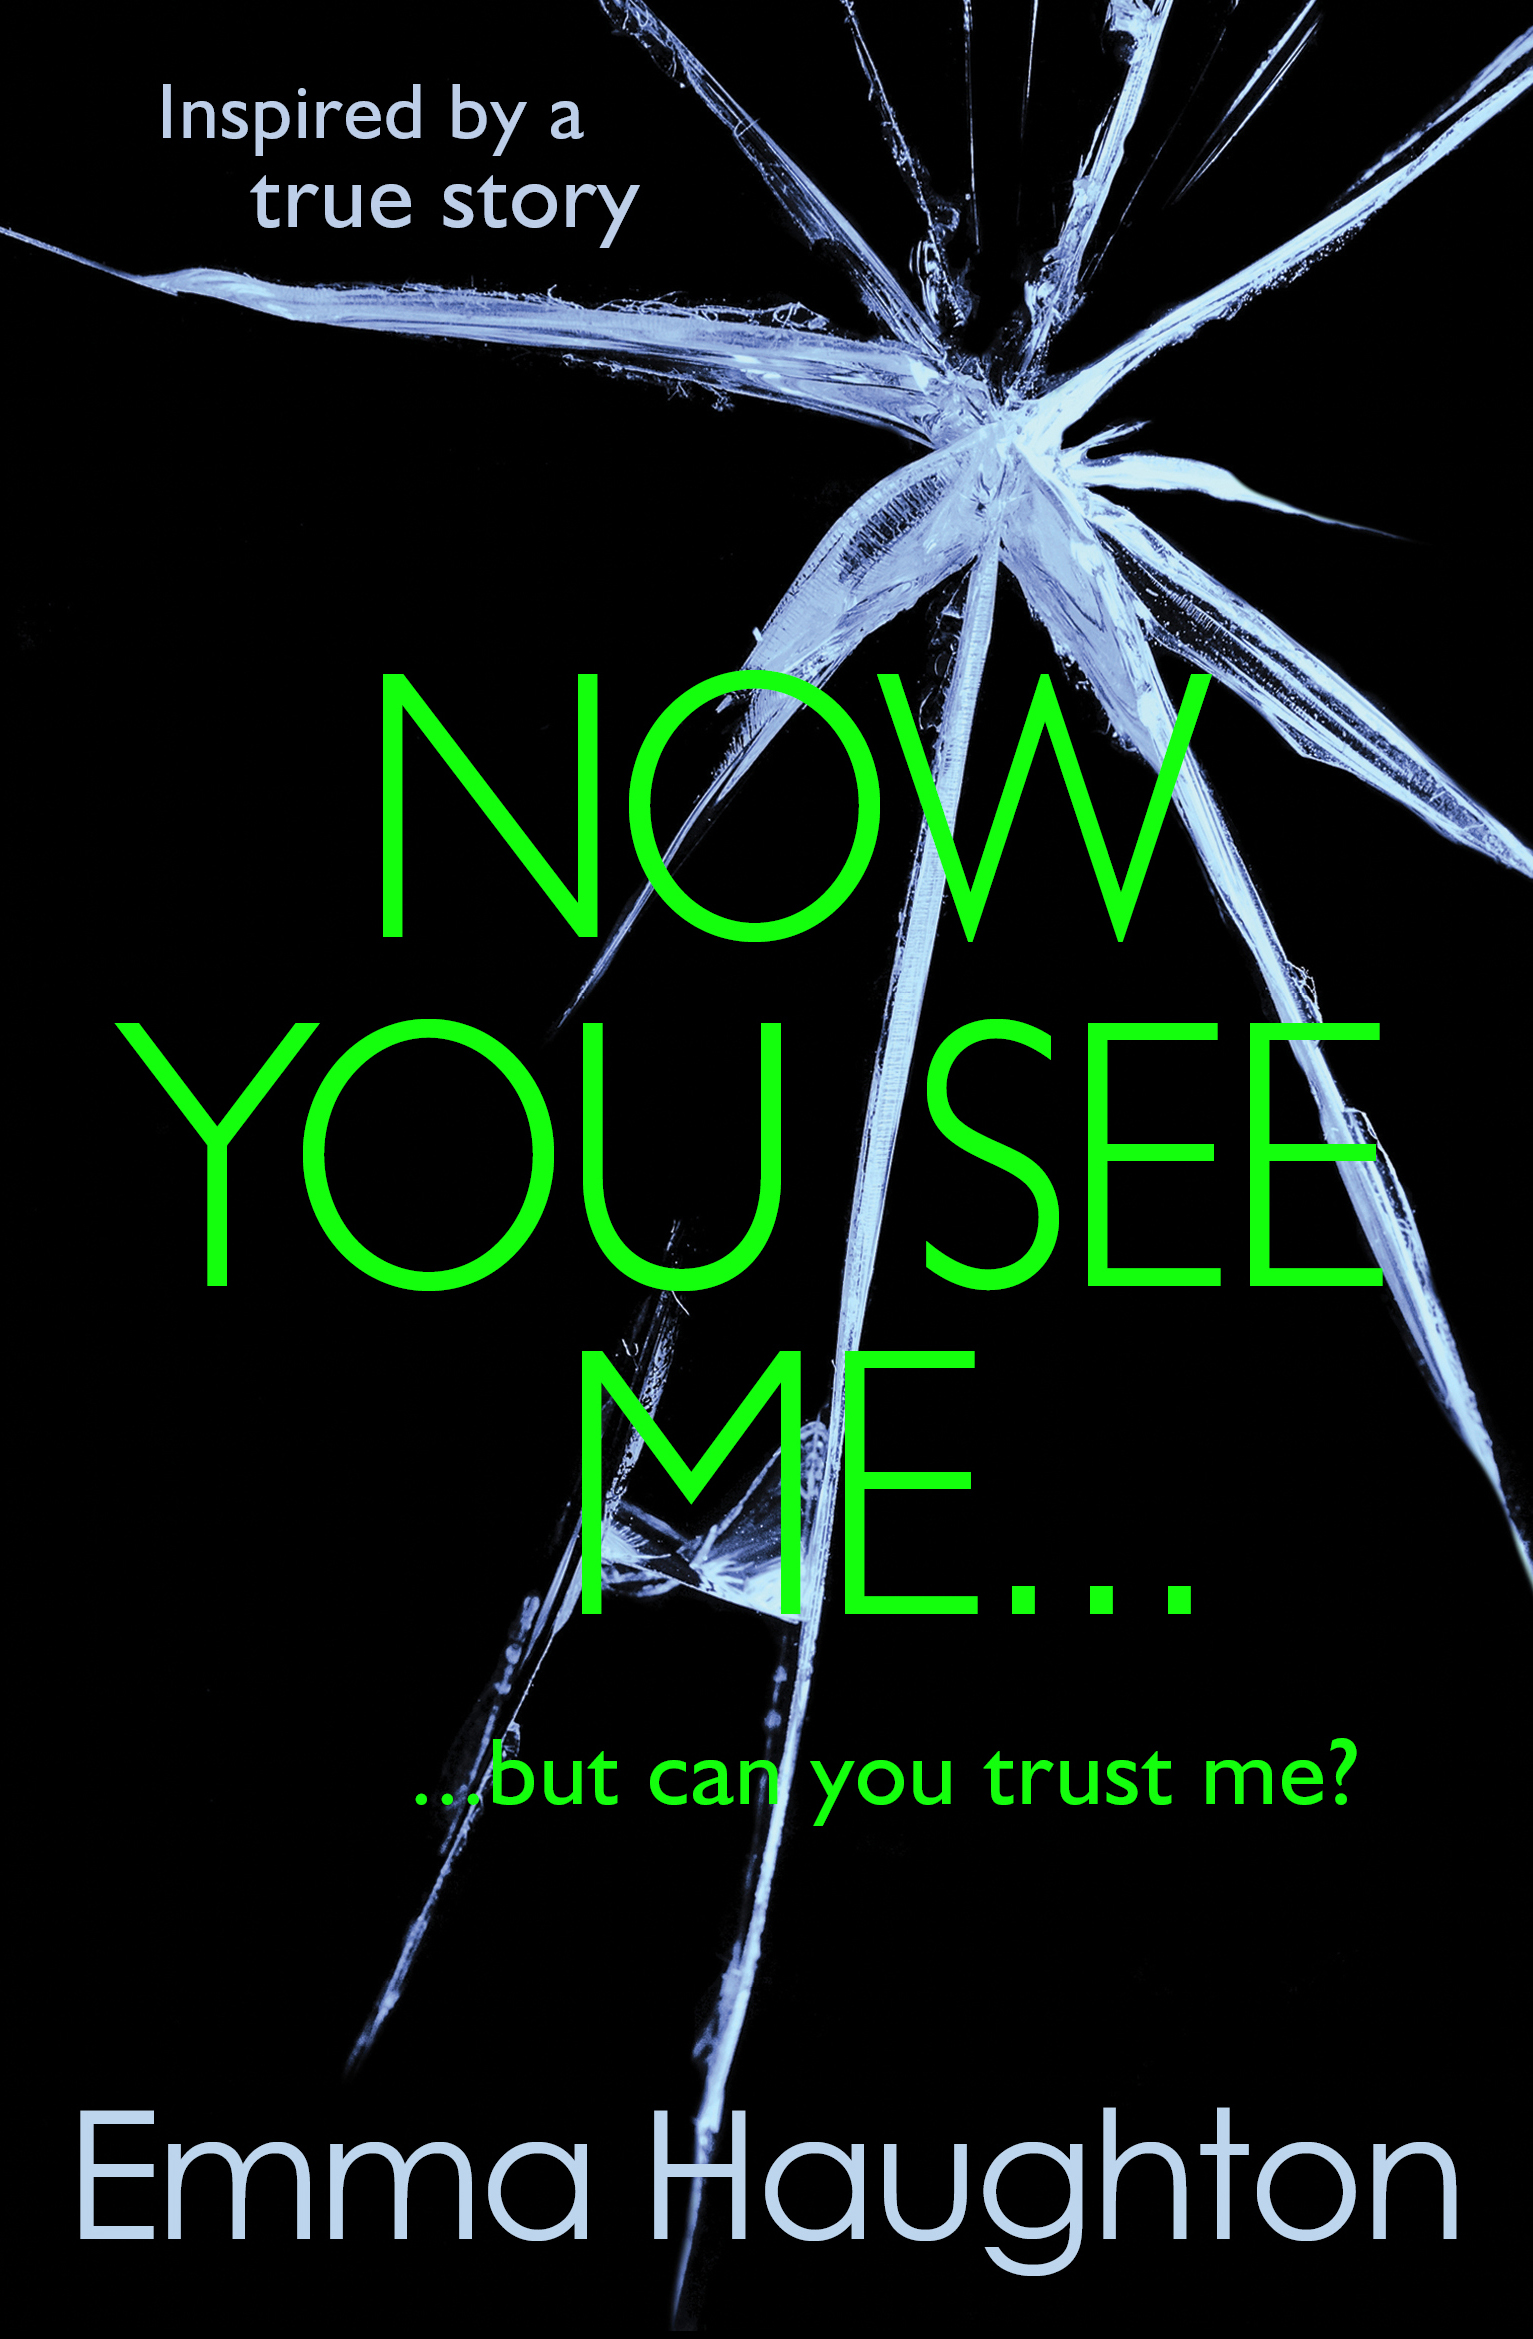 NowYouSeeMe_frontcover_green - higher res